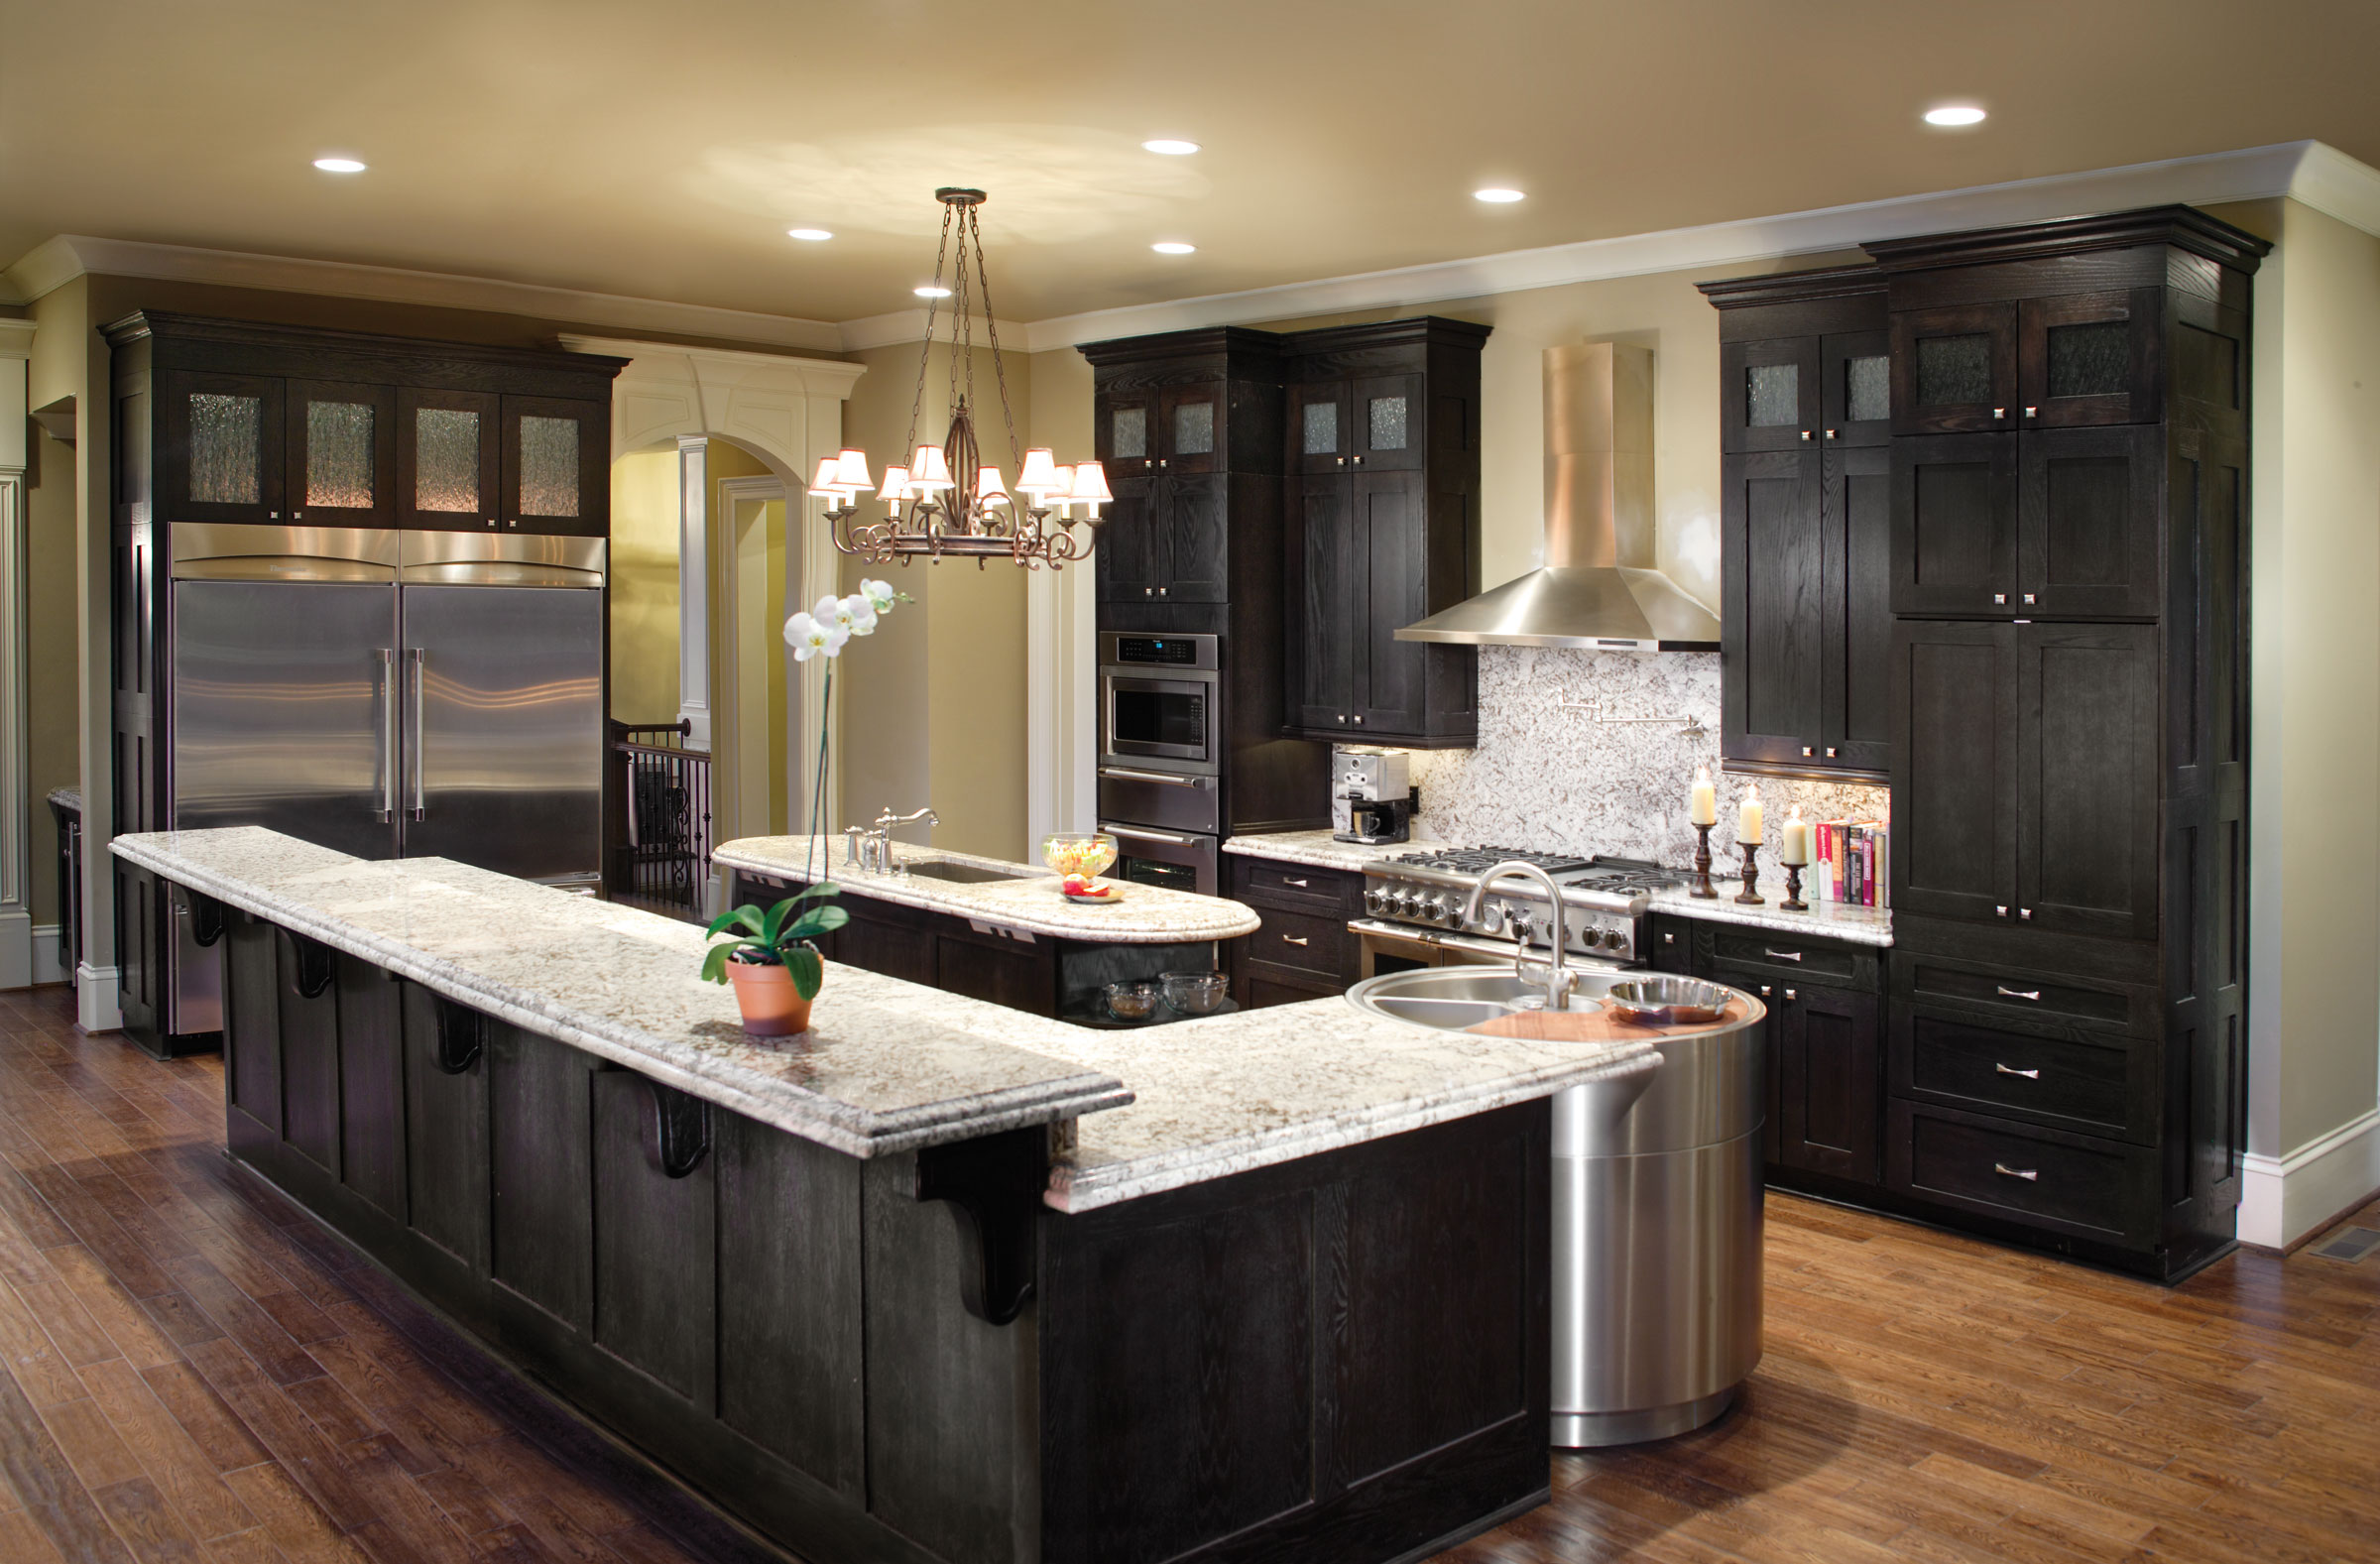 Custom bathroom kitchen cabinets phoenix cabinets by for Bathroom counter designs